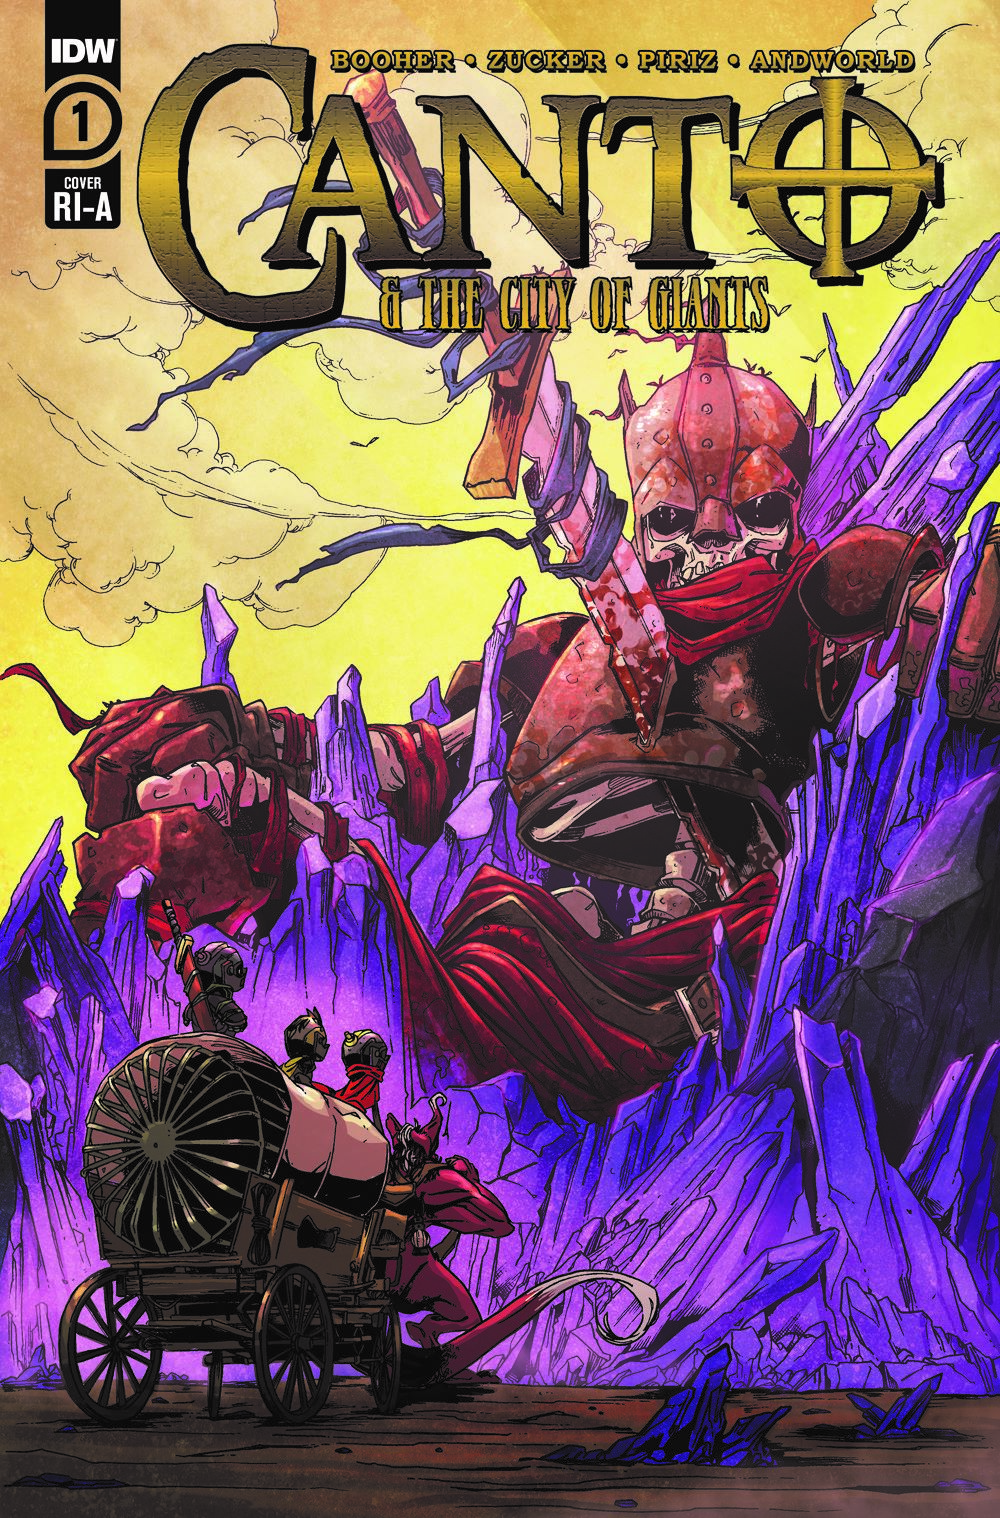 Canto-CoG01_cvrRI-A ComicList Previews: CANTO AND THE CITY OF GIANTS #1 (OF 3)